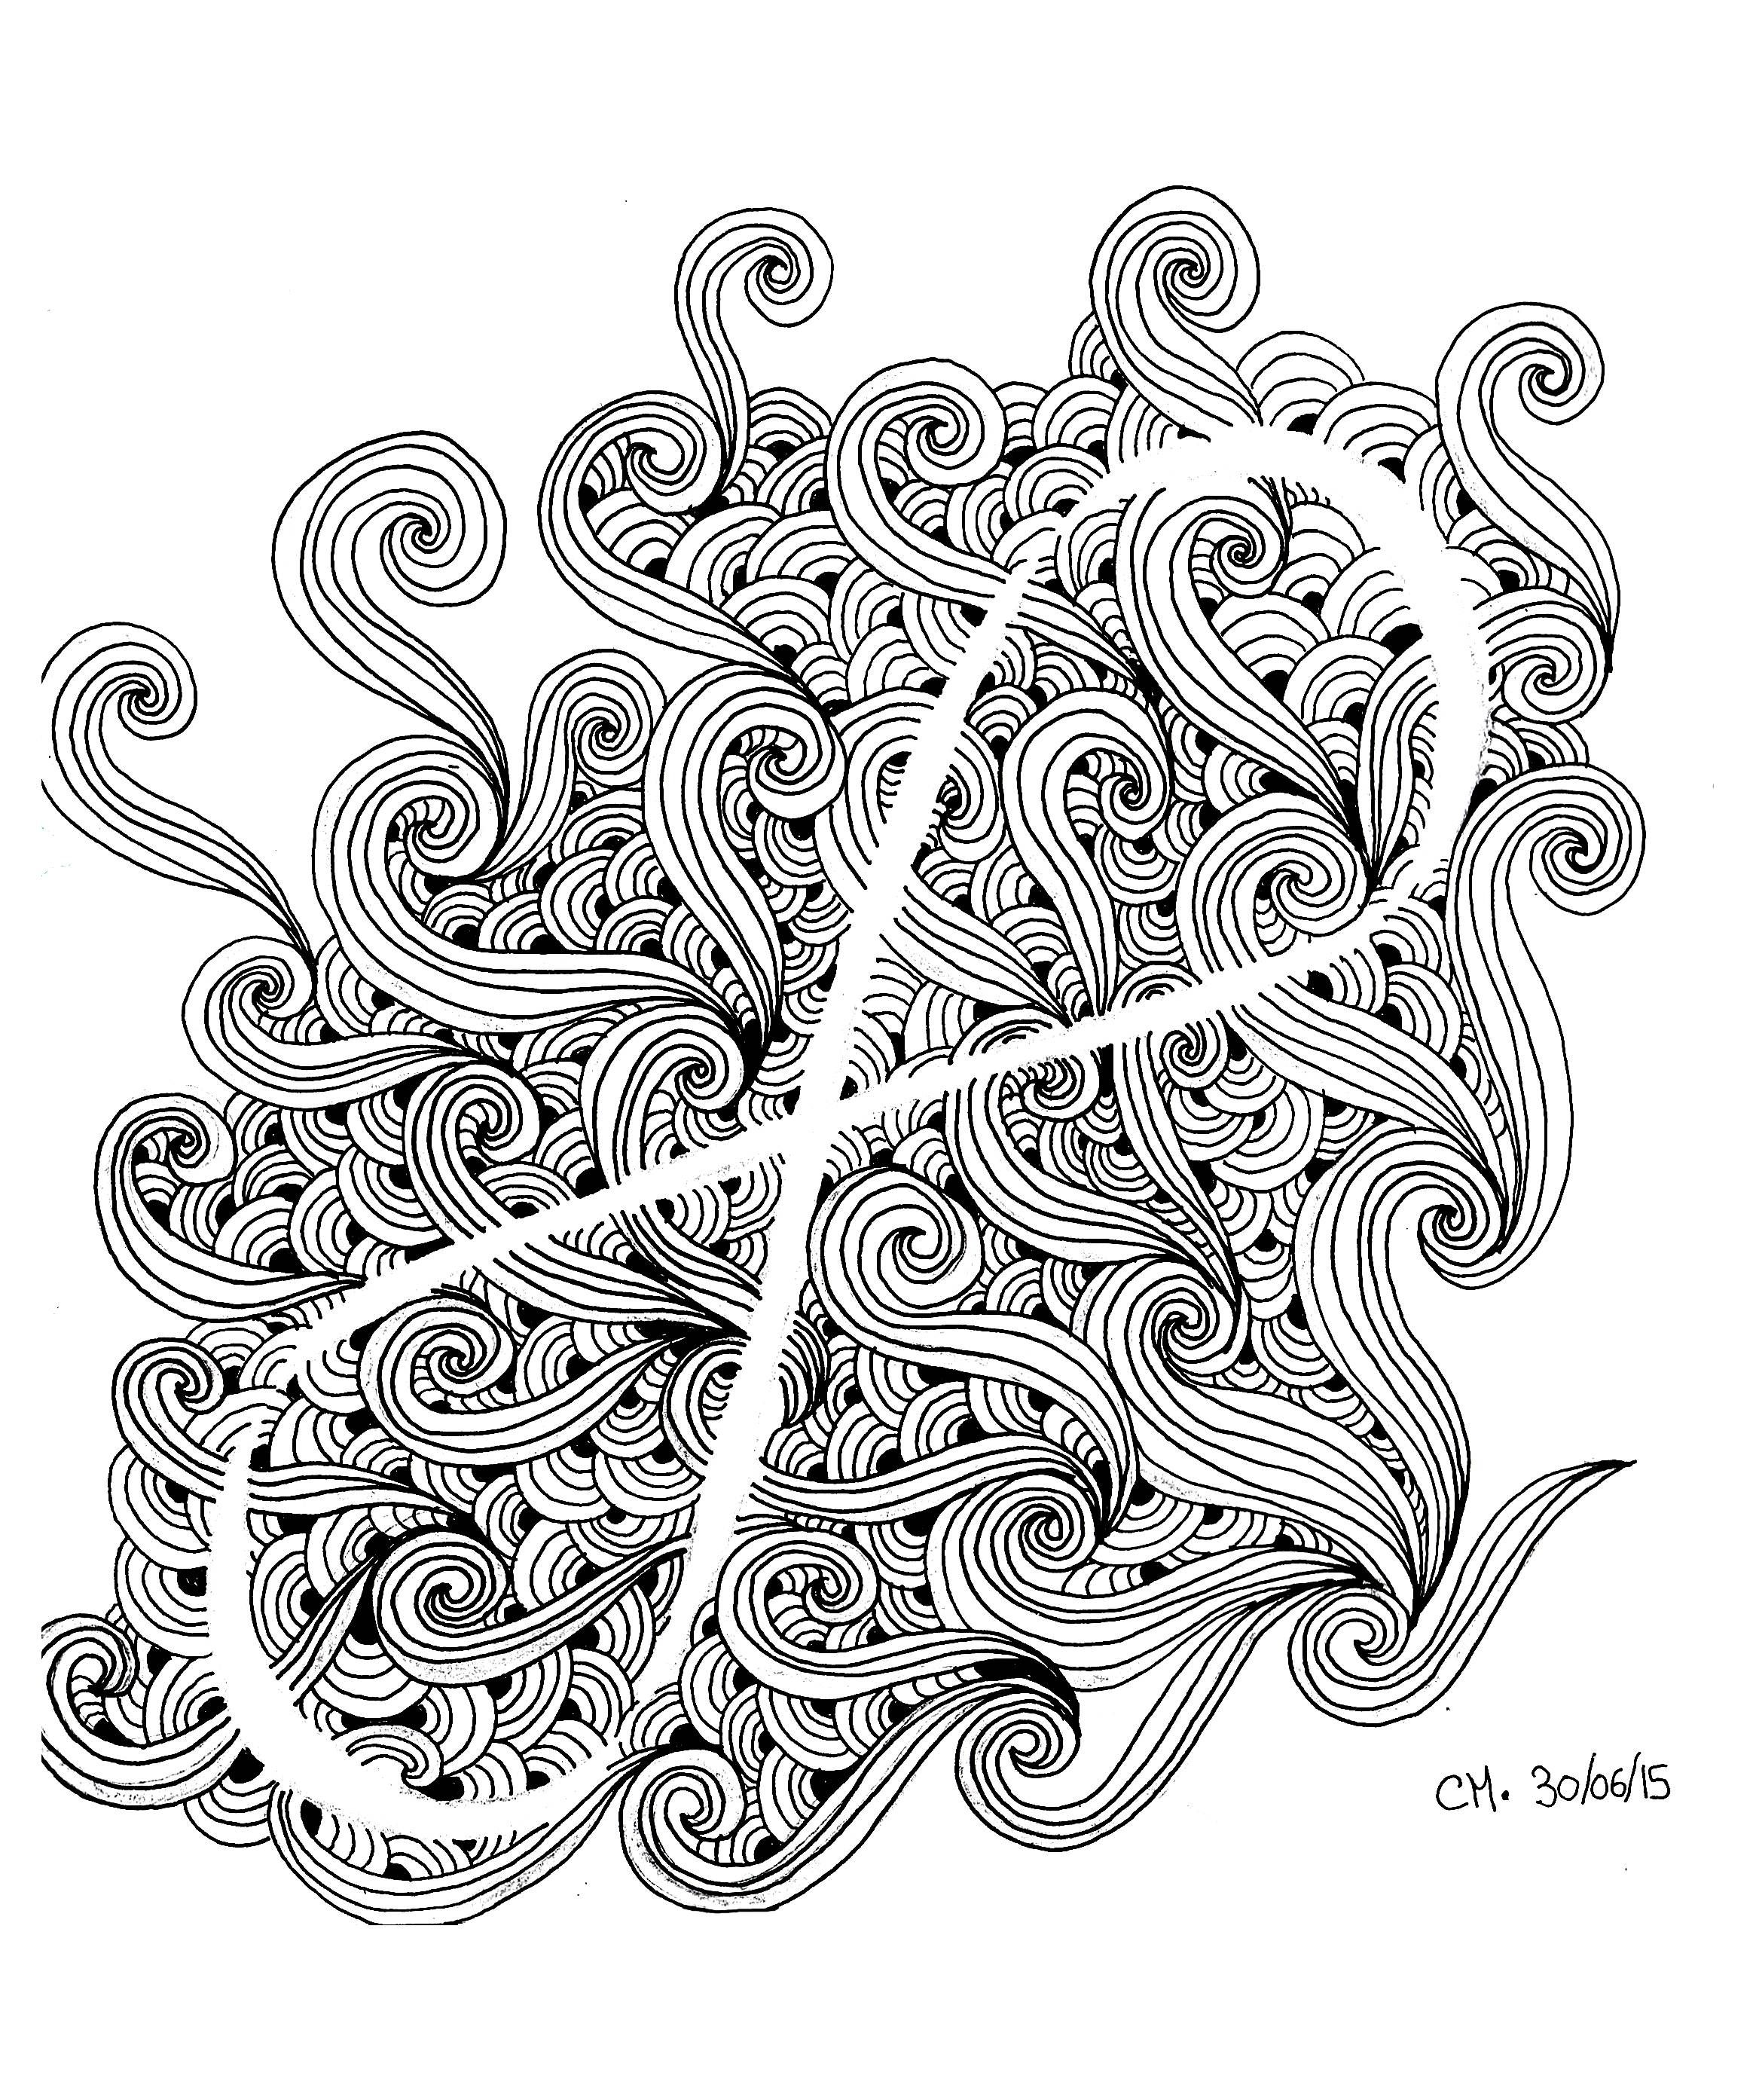 Infini Doodle Exclusive Zentangle Coloring Page See The Original WorkFrom Gallery ZentangleArtist Cathy M